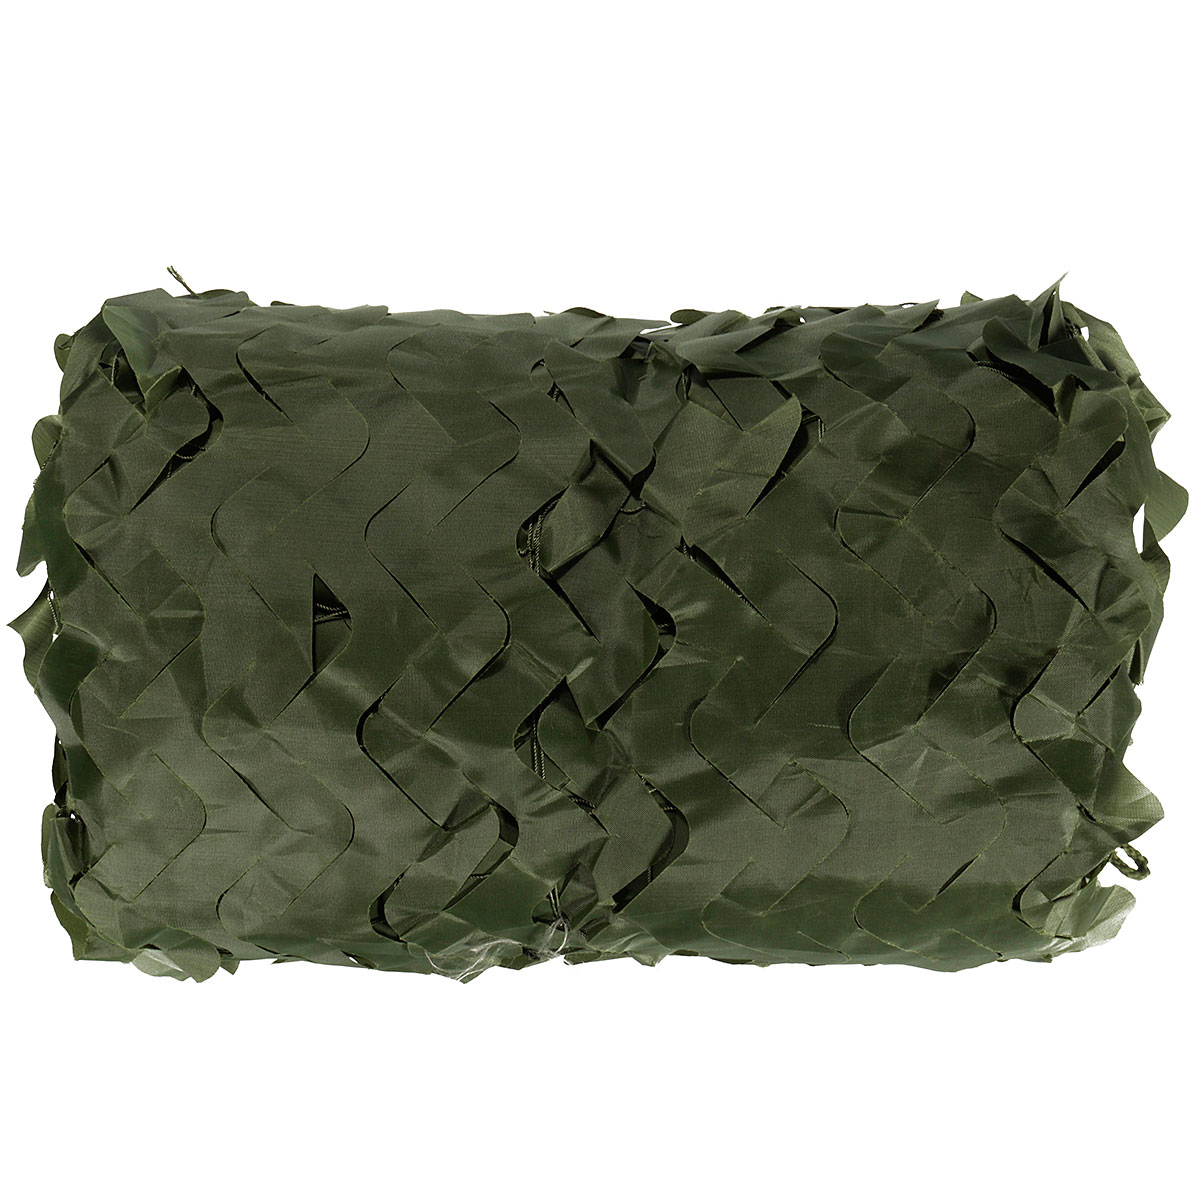 ФОТО 5 Colors Military Camouflage Net 5x3M Outdoor Camo Net for Hunting Covering Camping Woodlands Leaves Hide Sun Shelter  Car-cover